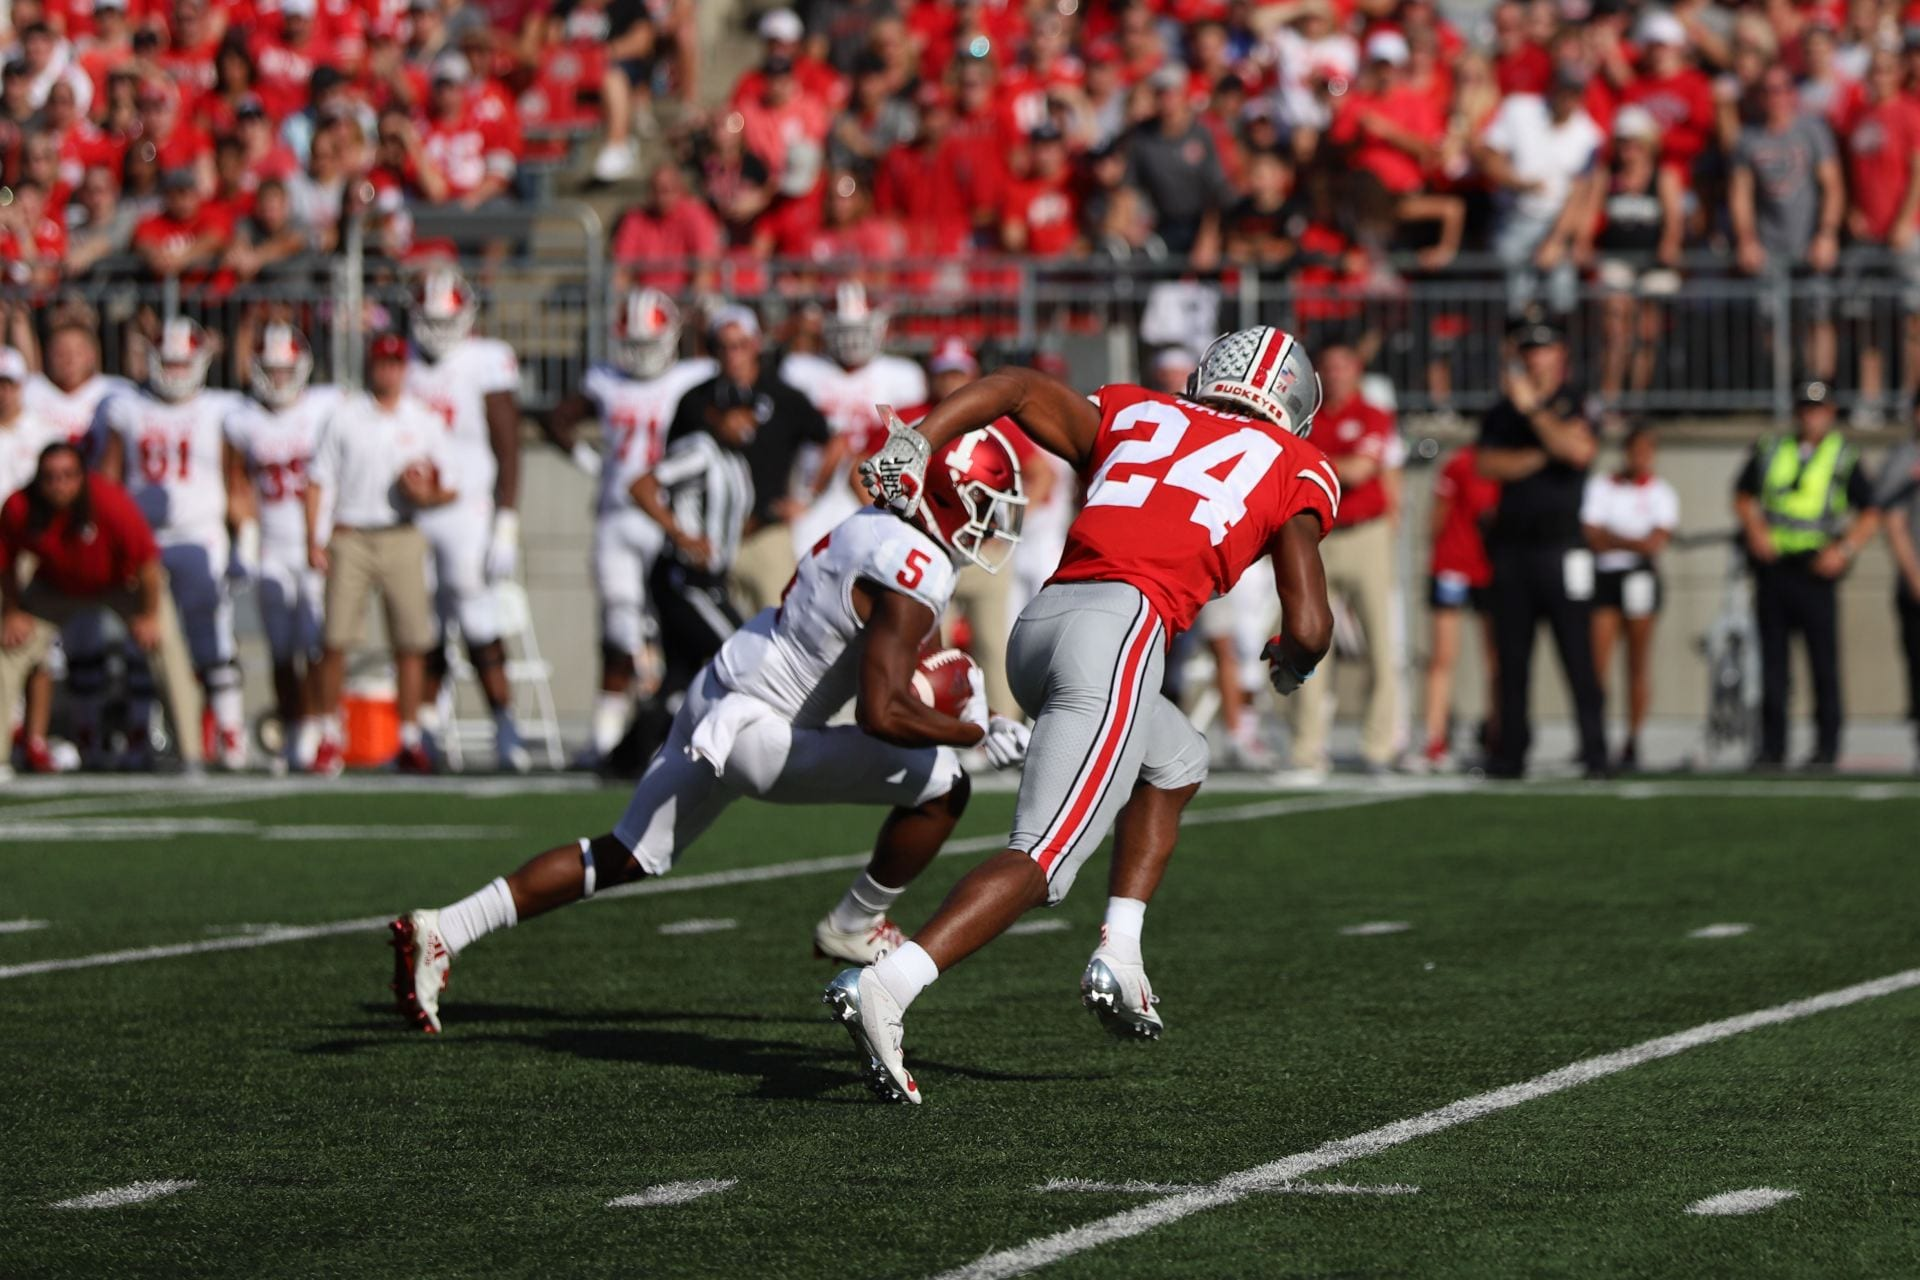 Ohio State cornerback Shaun Wade chases down an Indiana receiver with the ball